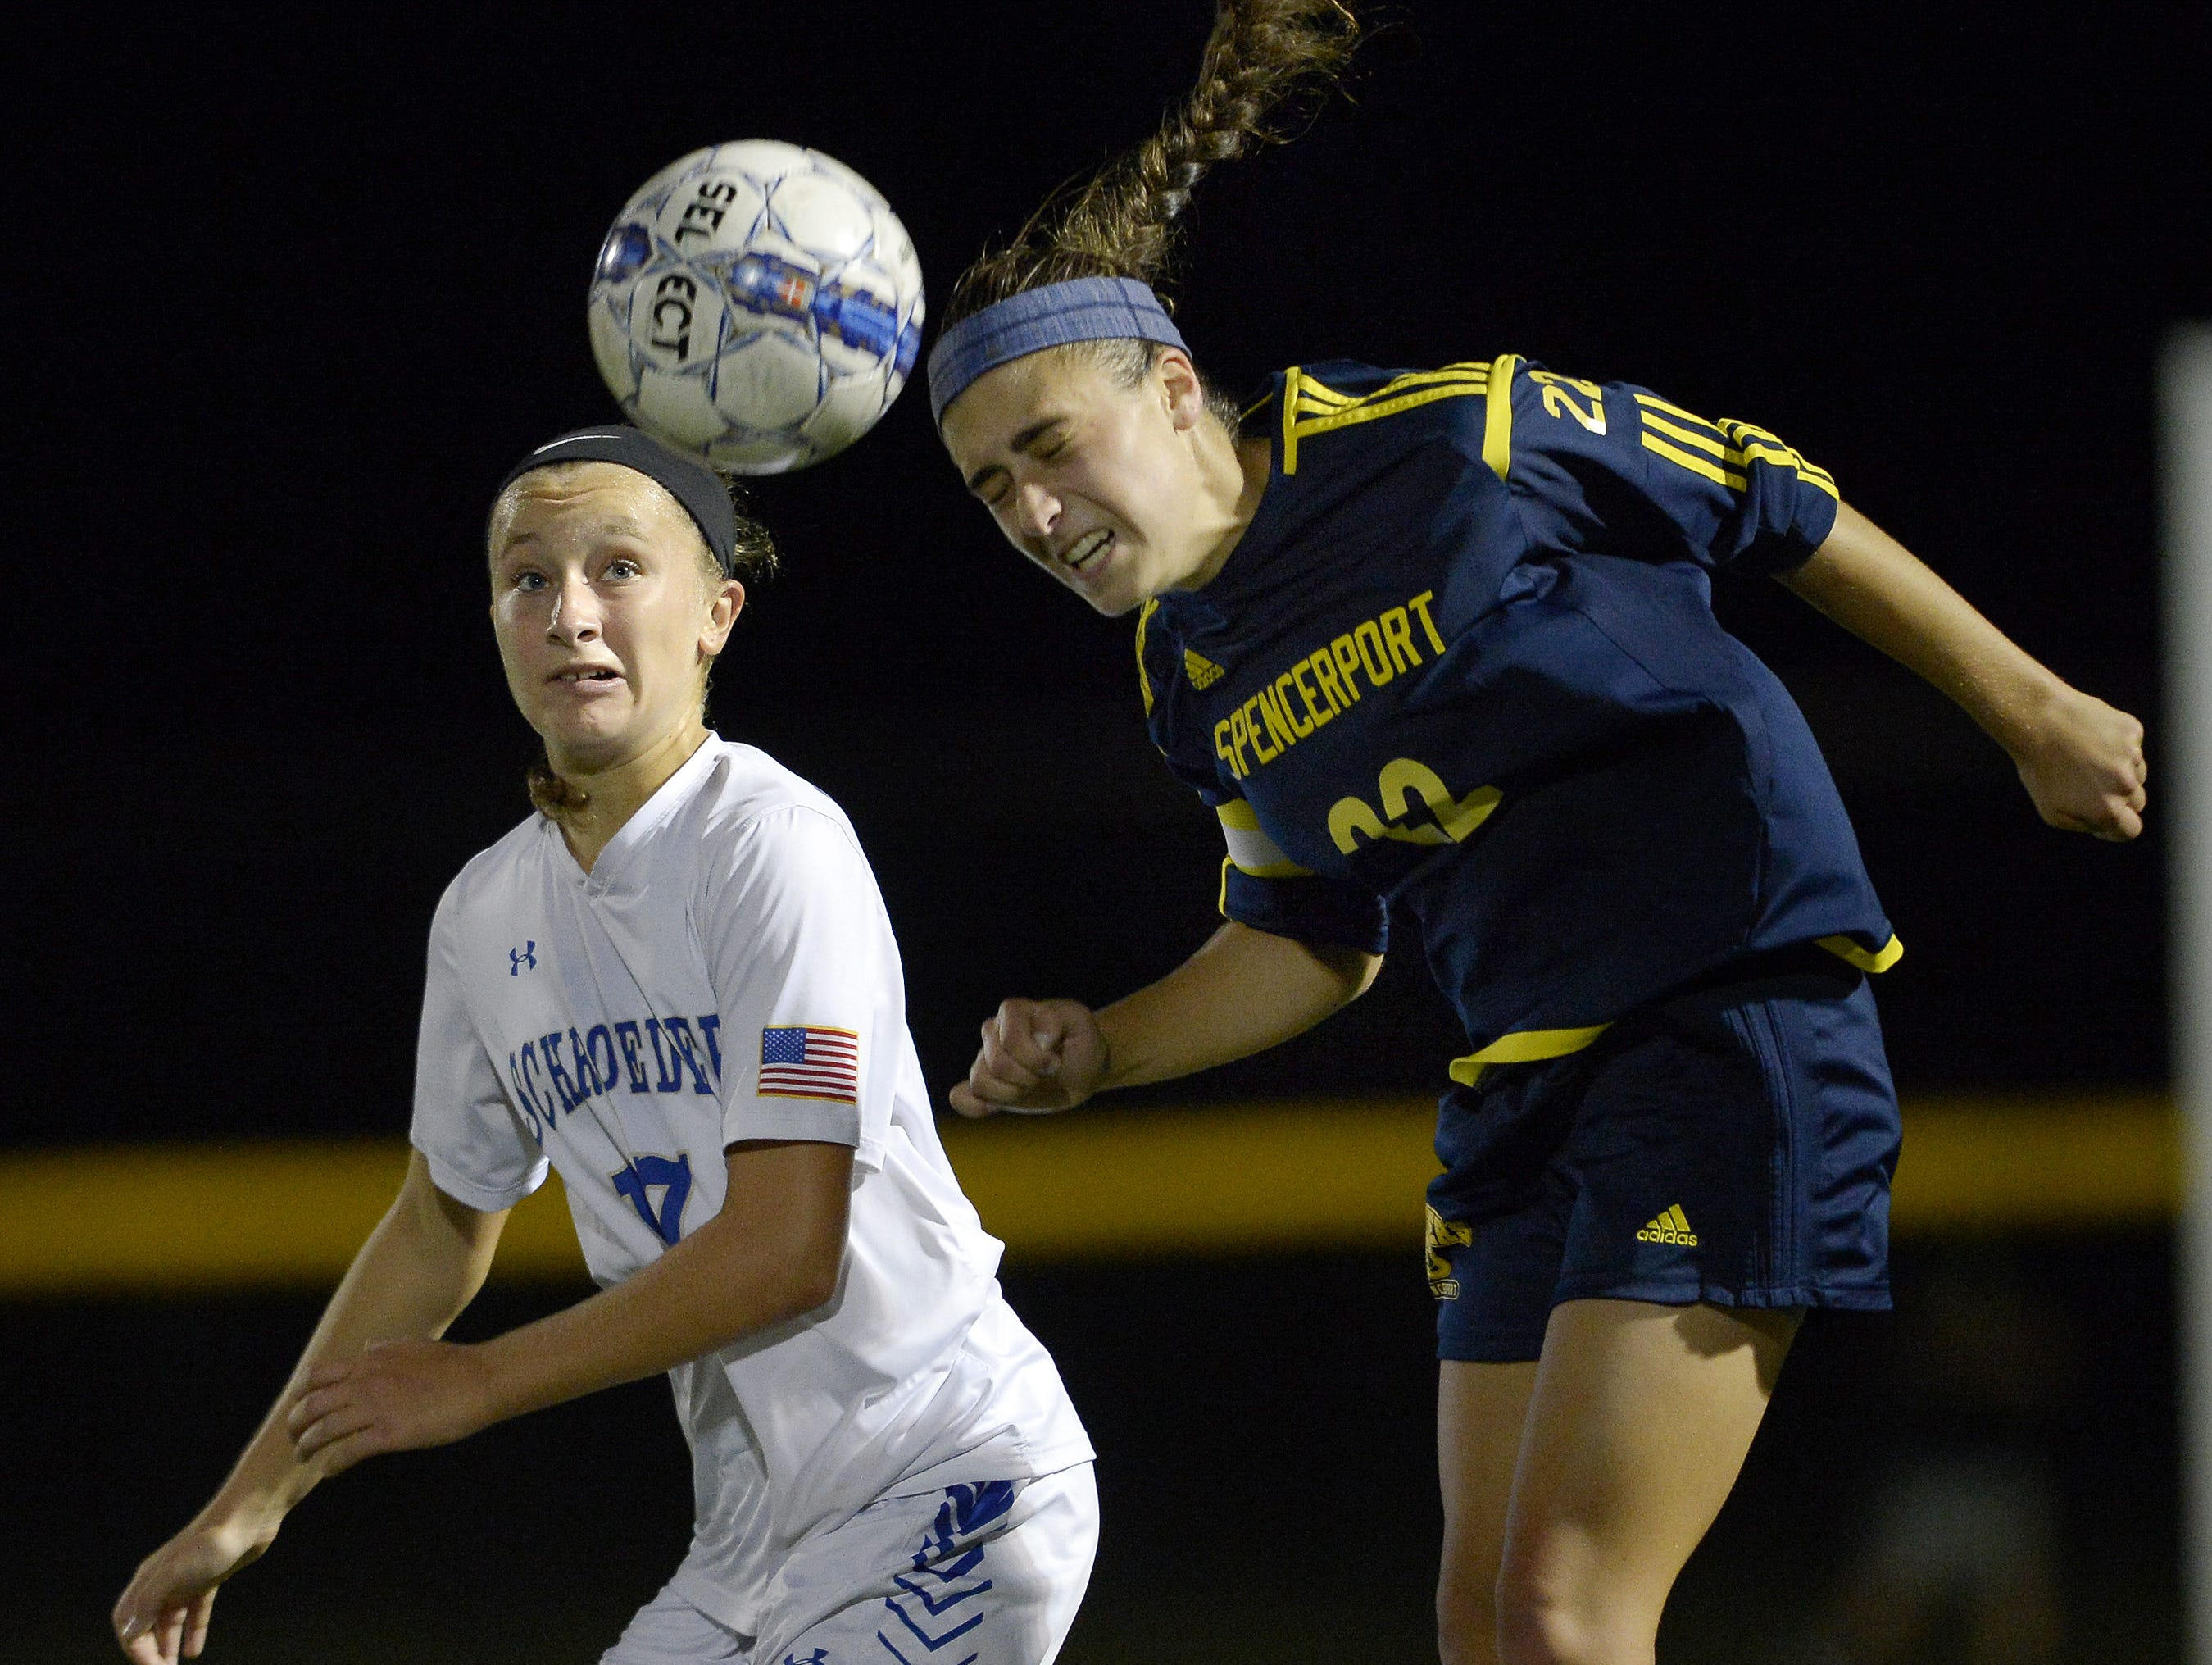 Spencerport's Olivia Wall, right, wins a header in front of Webster Schroeder's Anna Hewlett during a regular season game at Webster Schroeder High School on Tuesday, Oct. 10, 2017. Spencerport beat Webster Schroeder 4-0.